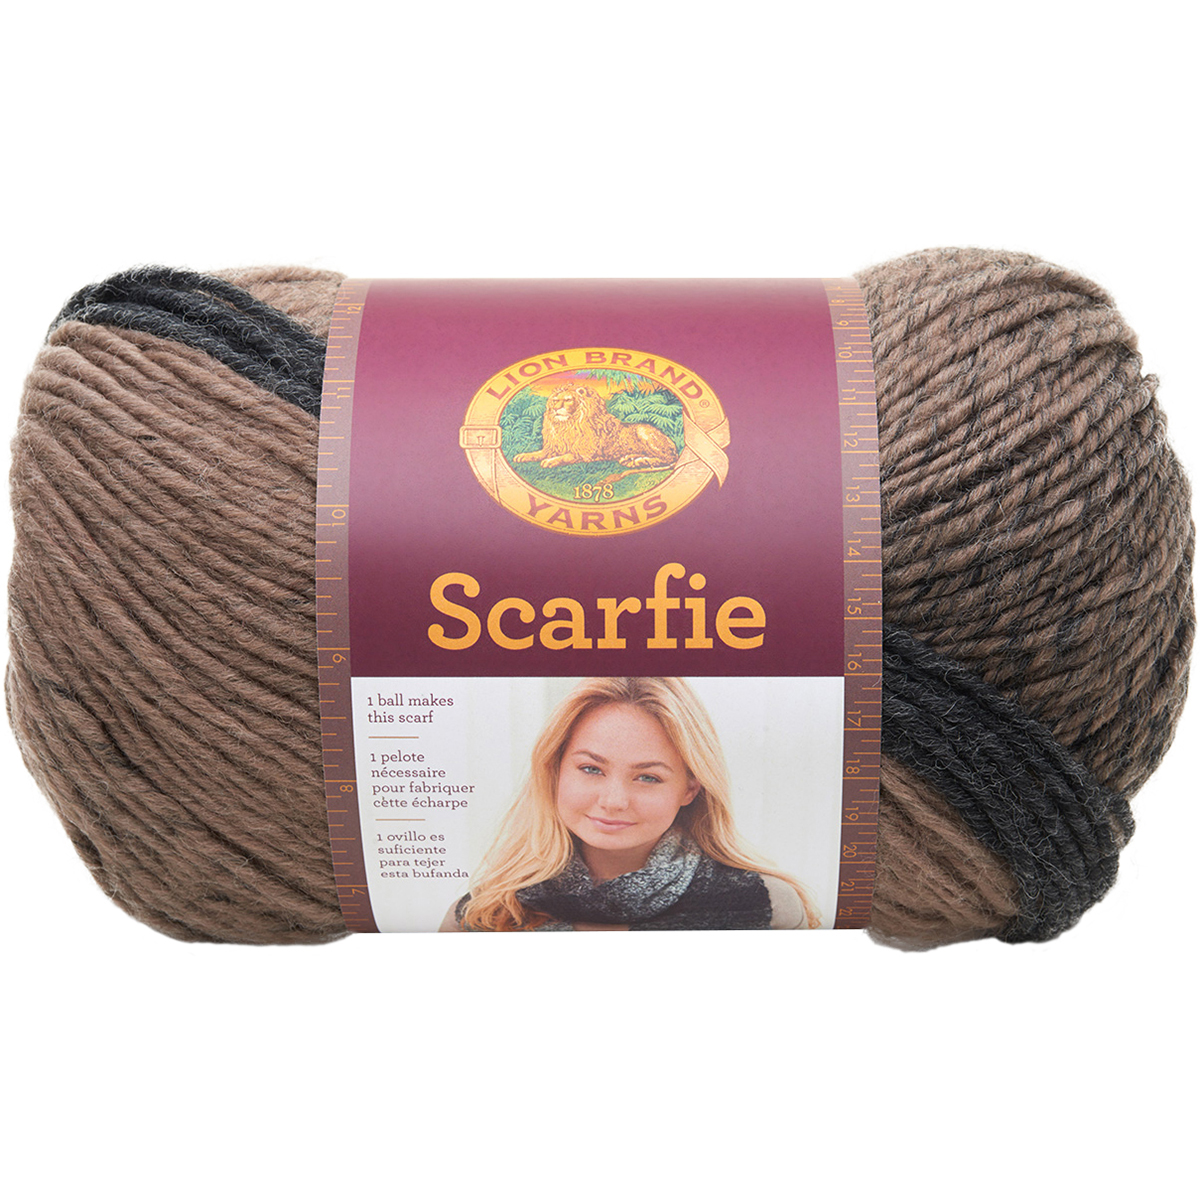 Lion Brand Yarn Scarfie Acrylic Wool Blend Bulky Yarn